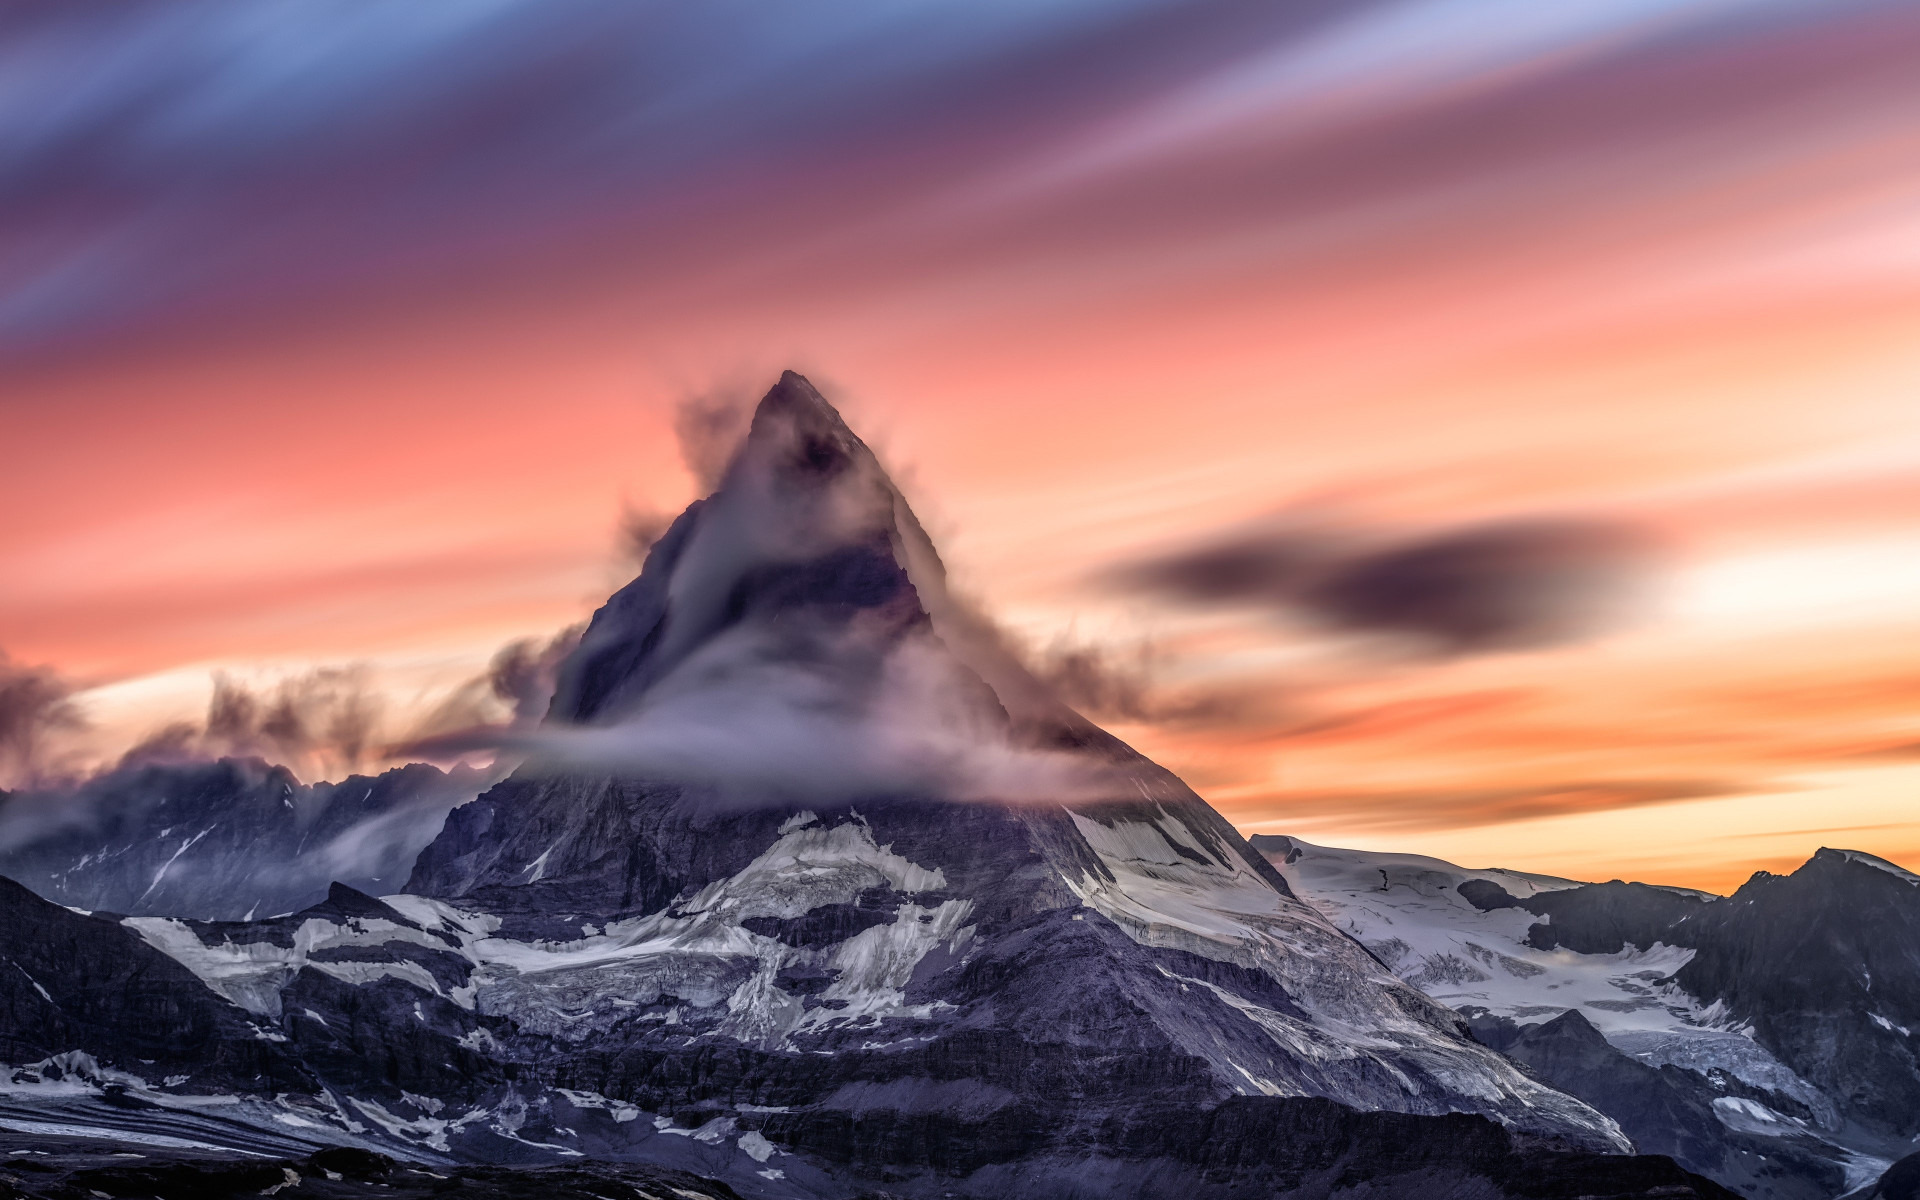 Matterhorn mountain from Alps wallpaper 1920x1200